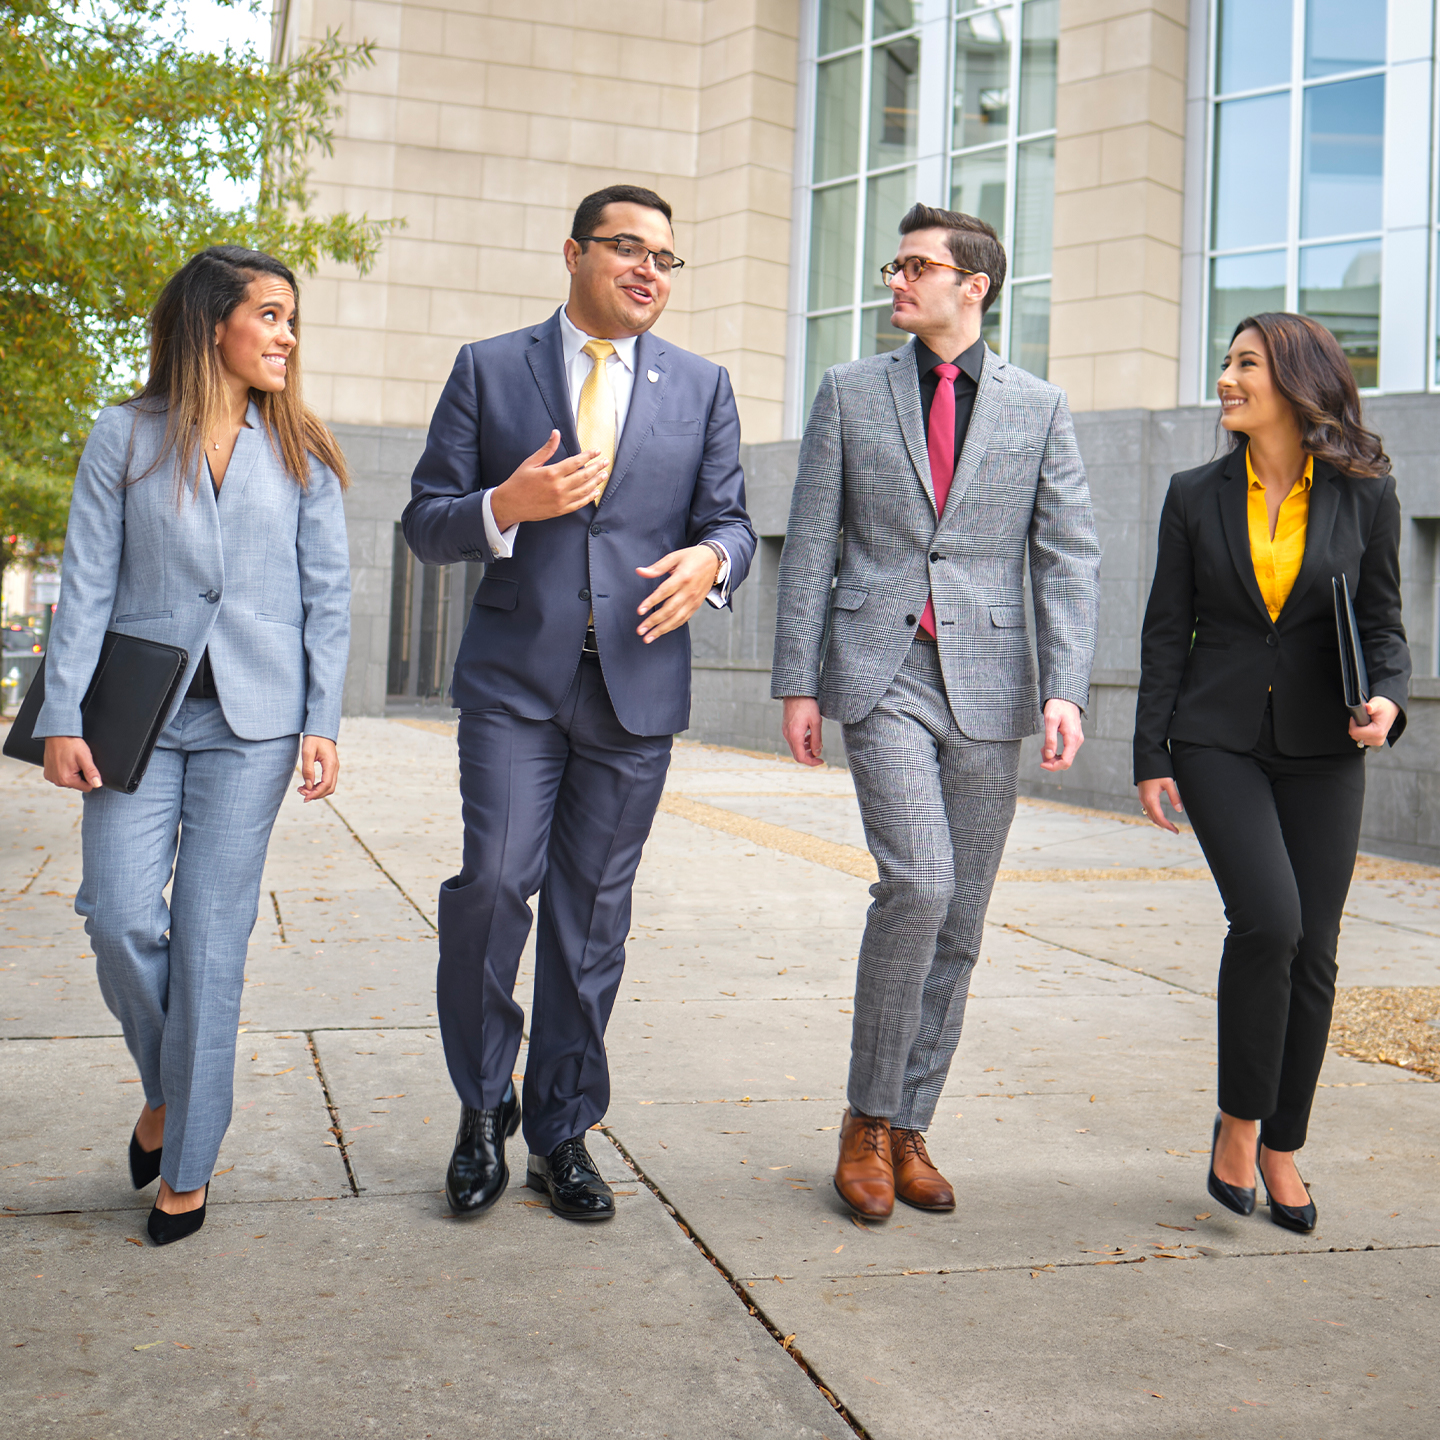 Students walking downtown in business attire